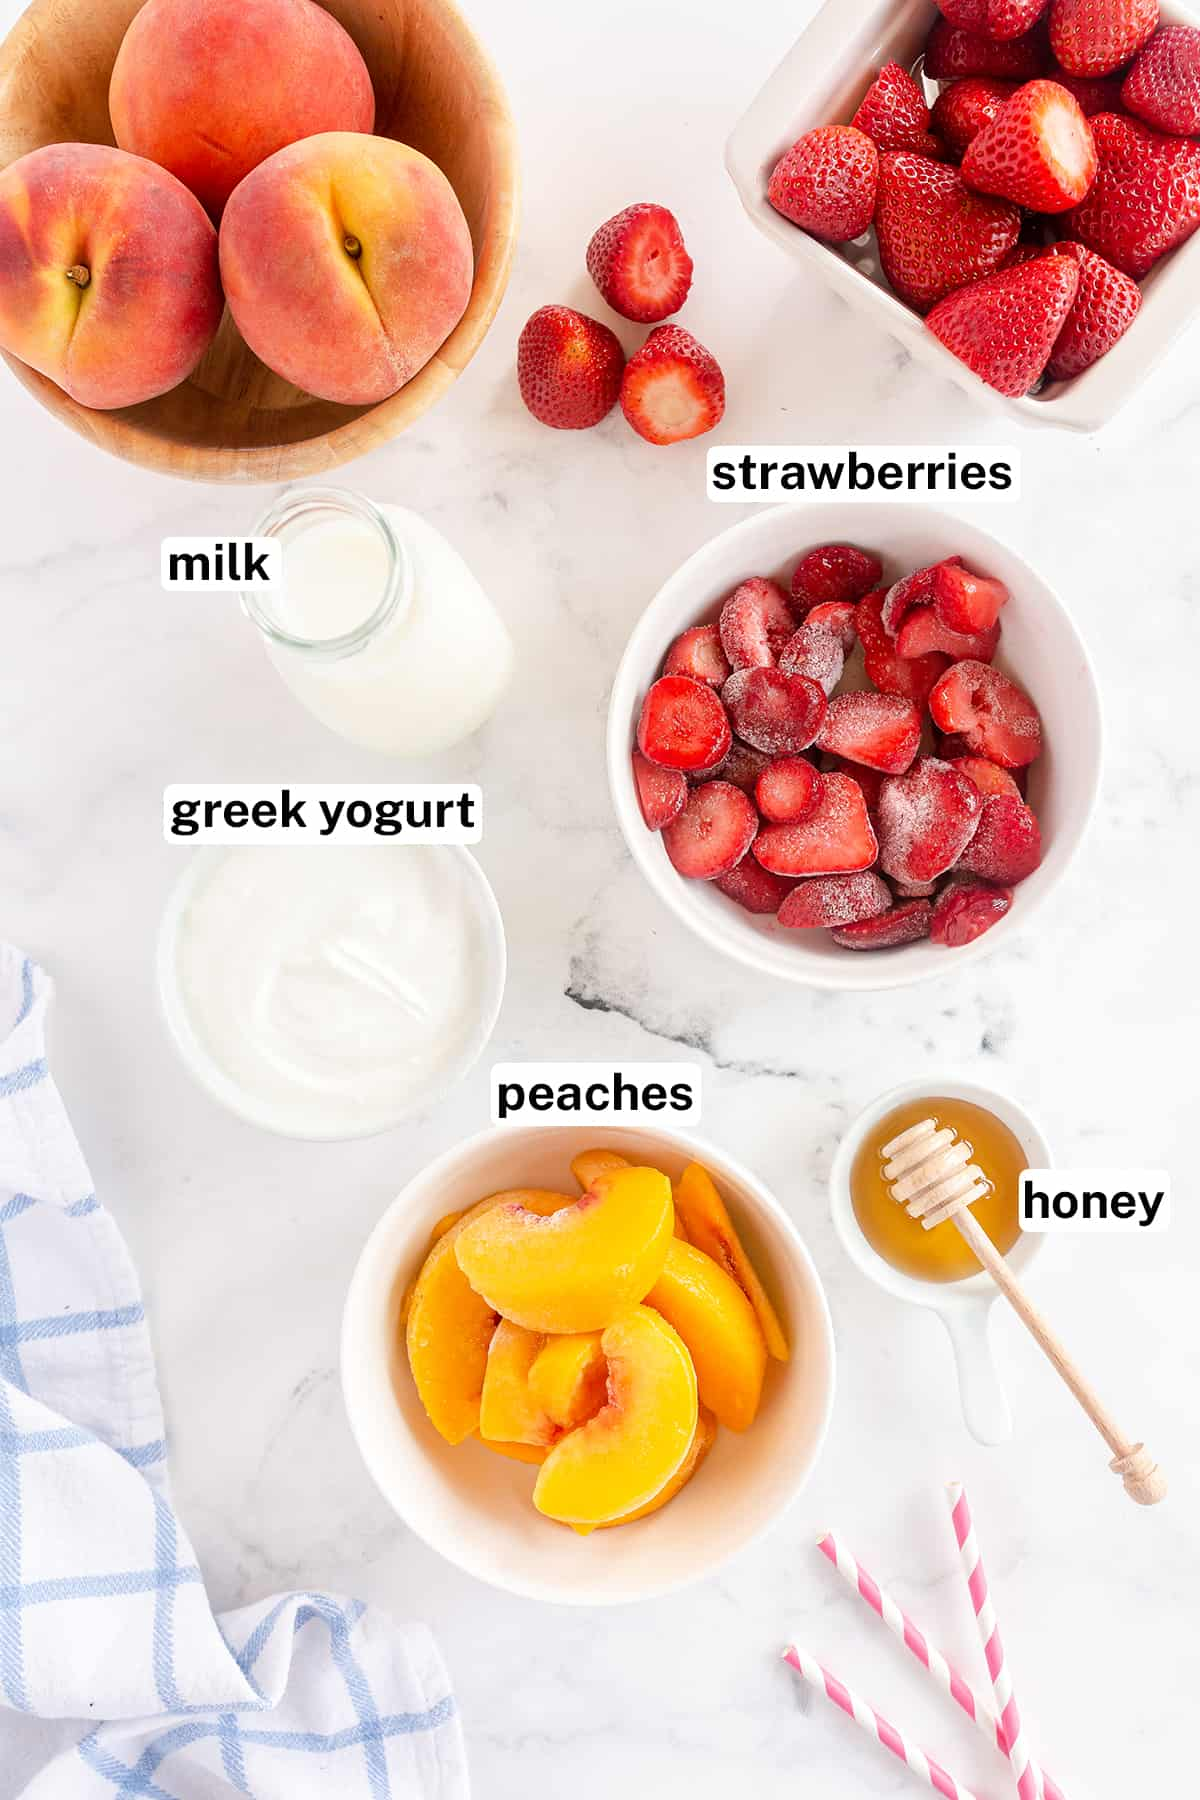 Ingredients for making strawberry and peach smoothies with text overlay.